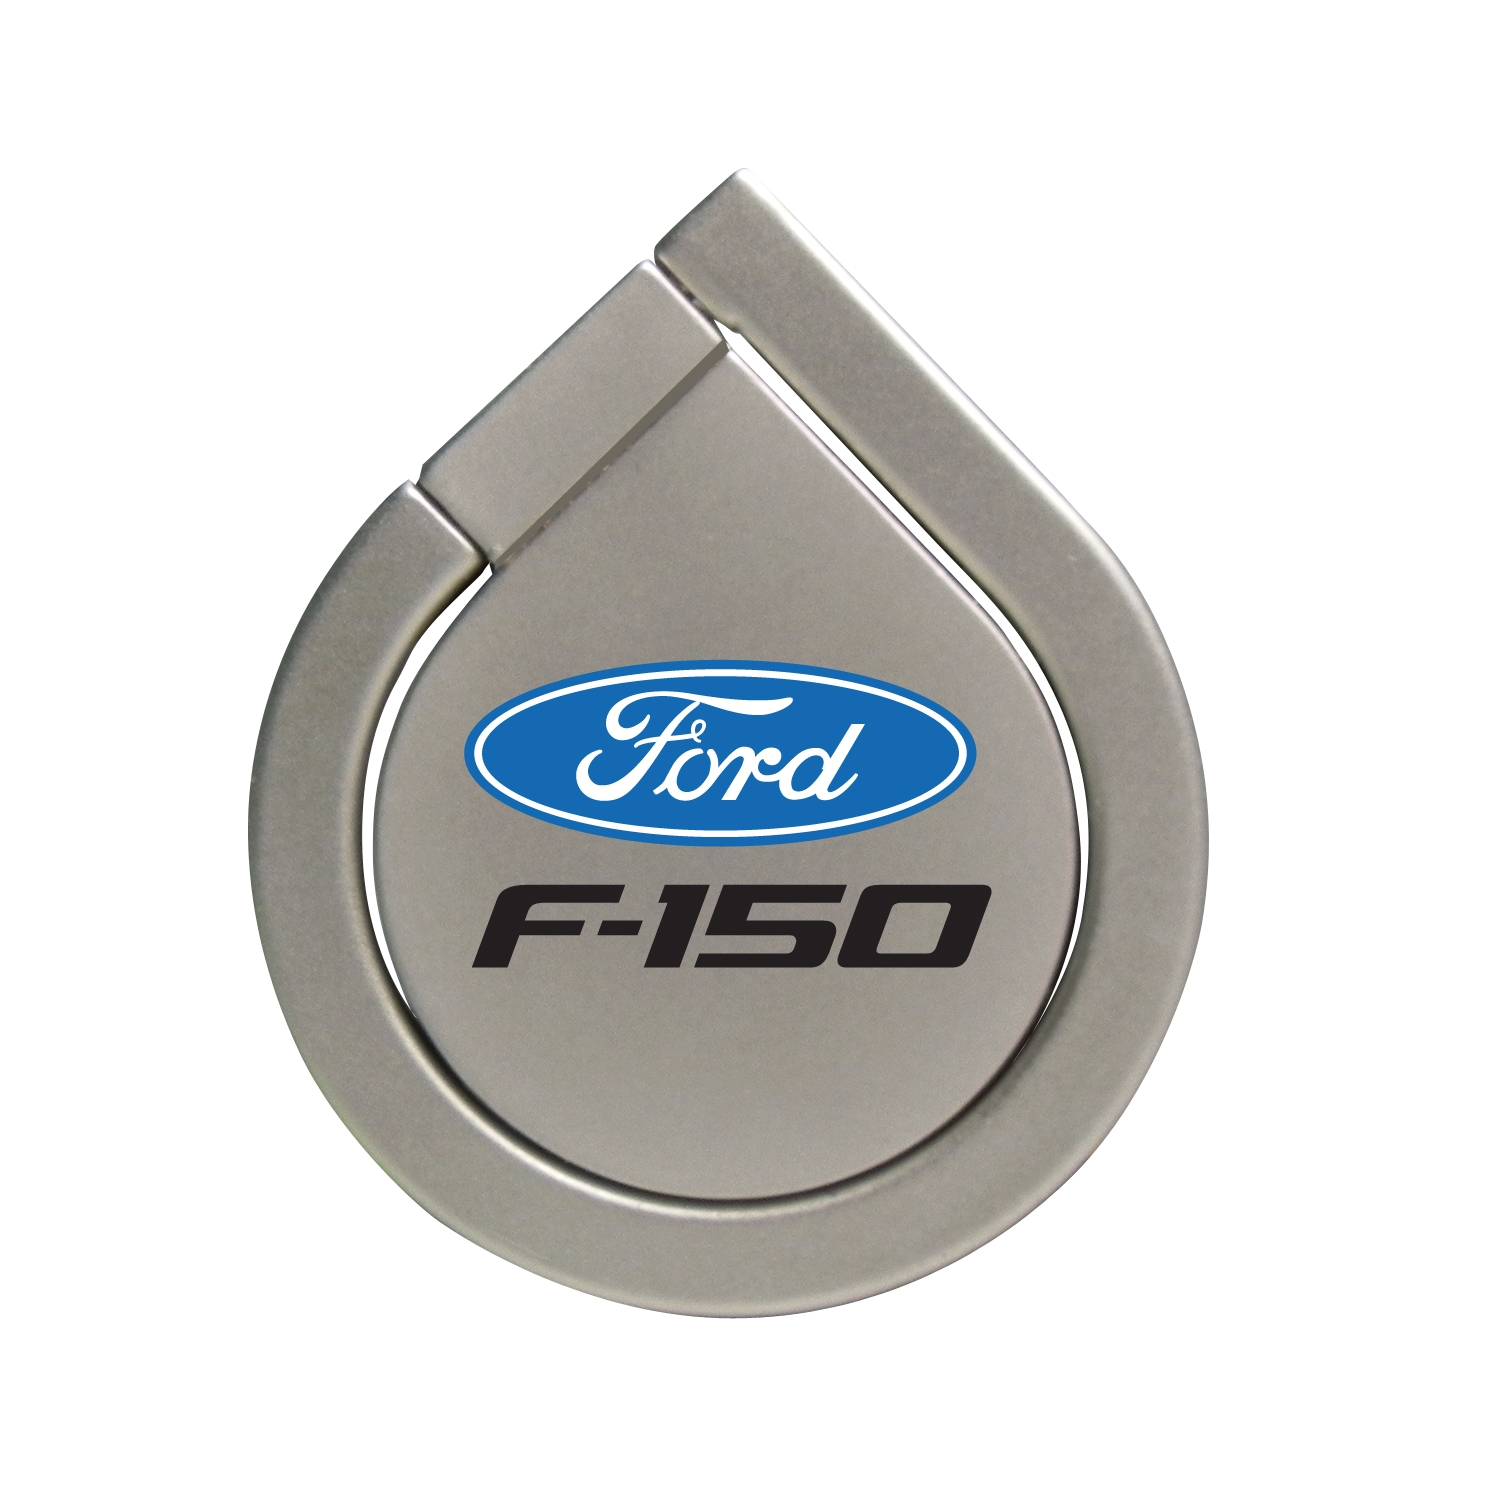 Ford F-150 Silver 360 Degree Rotation Finger Ring Holder for Cell Phone